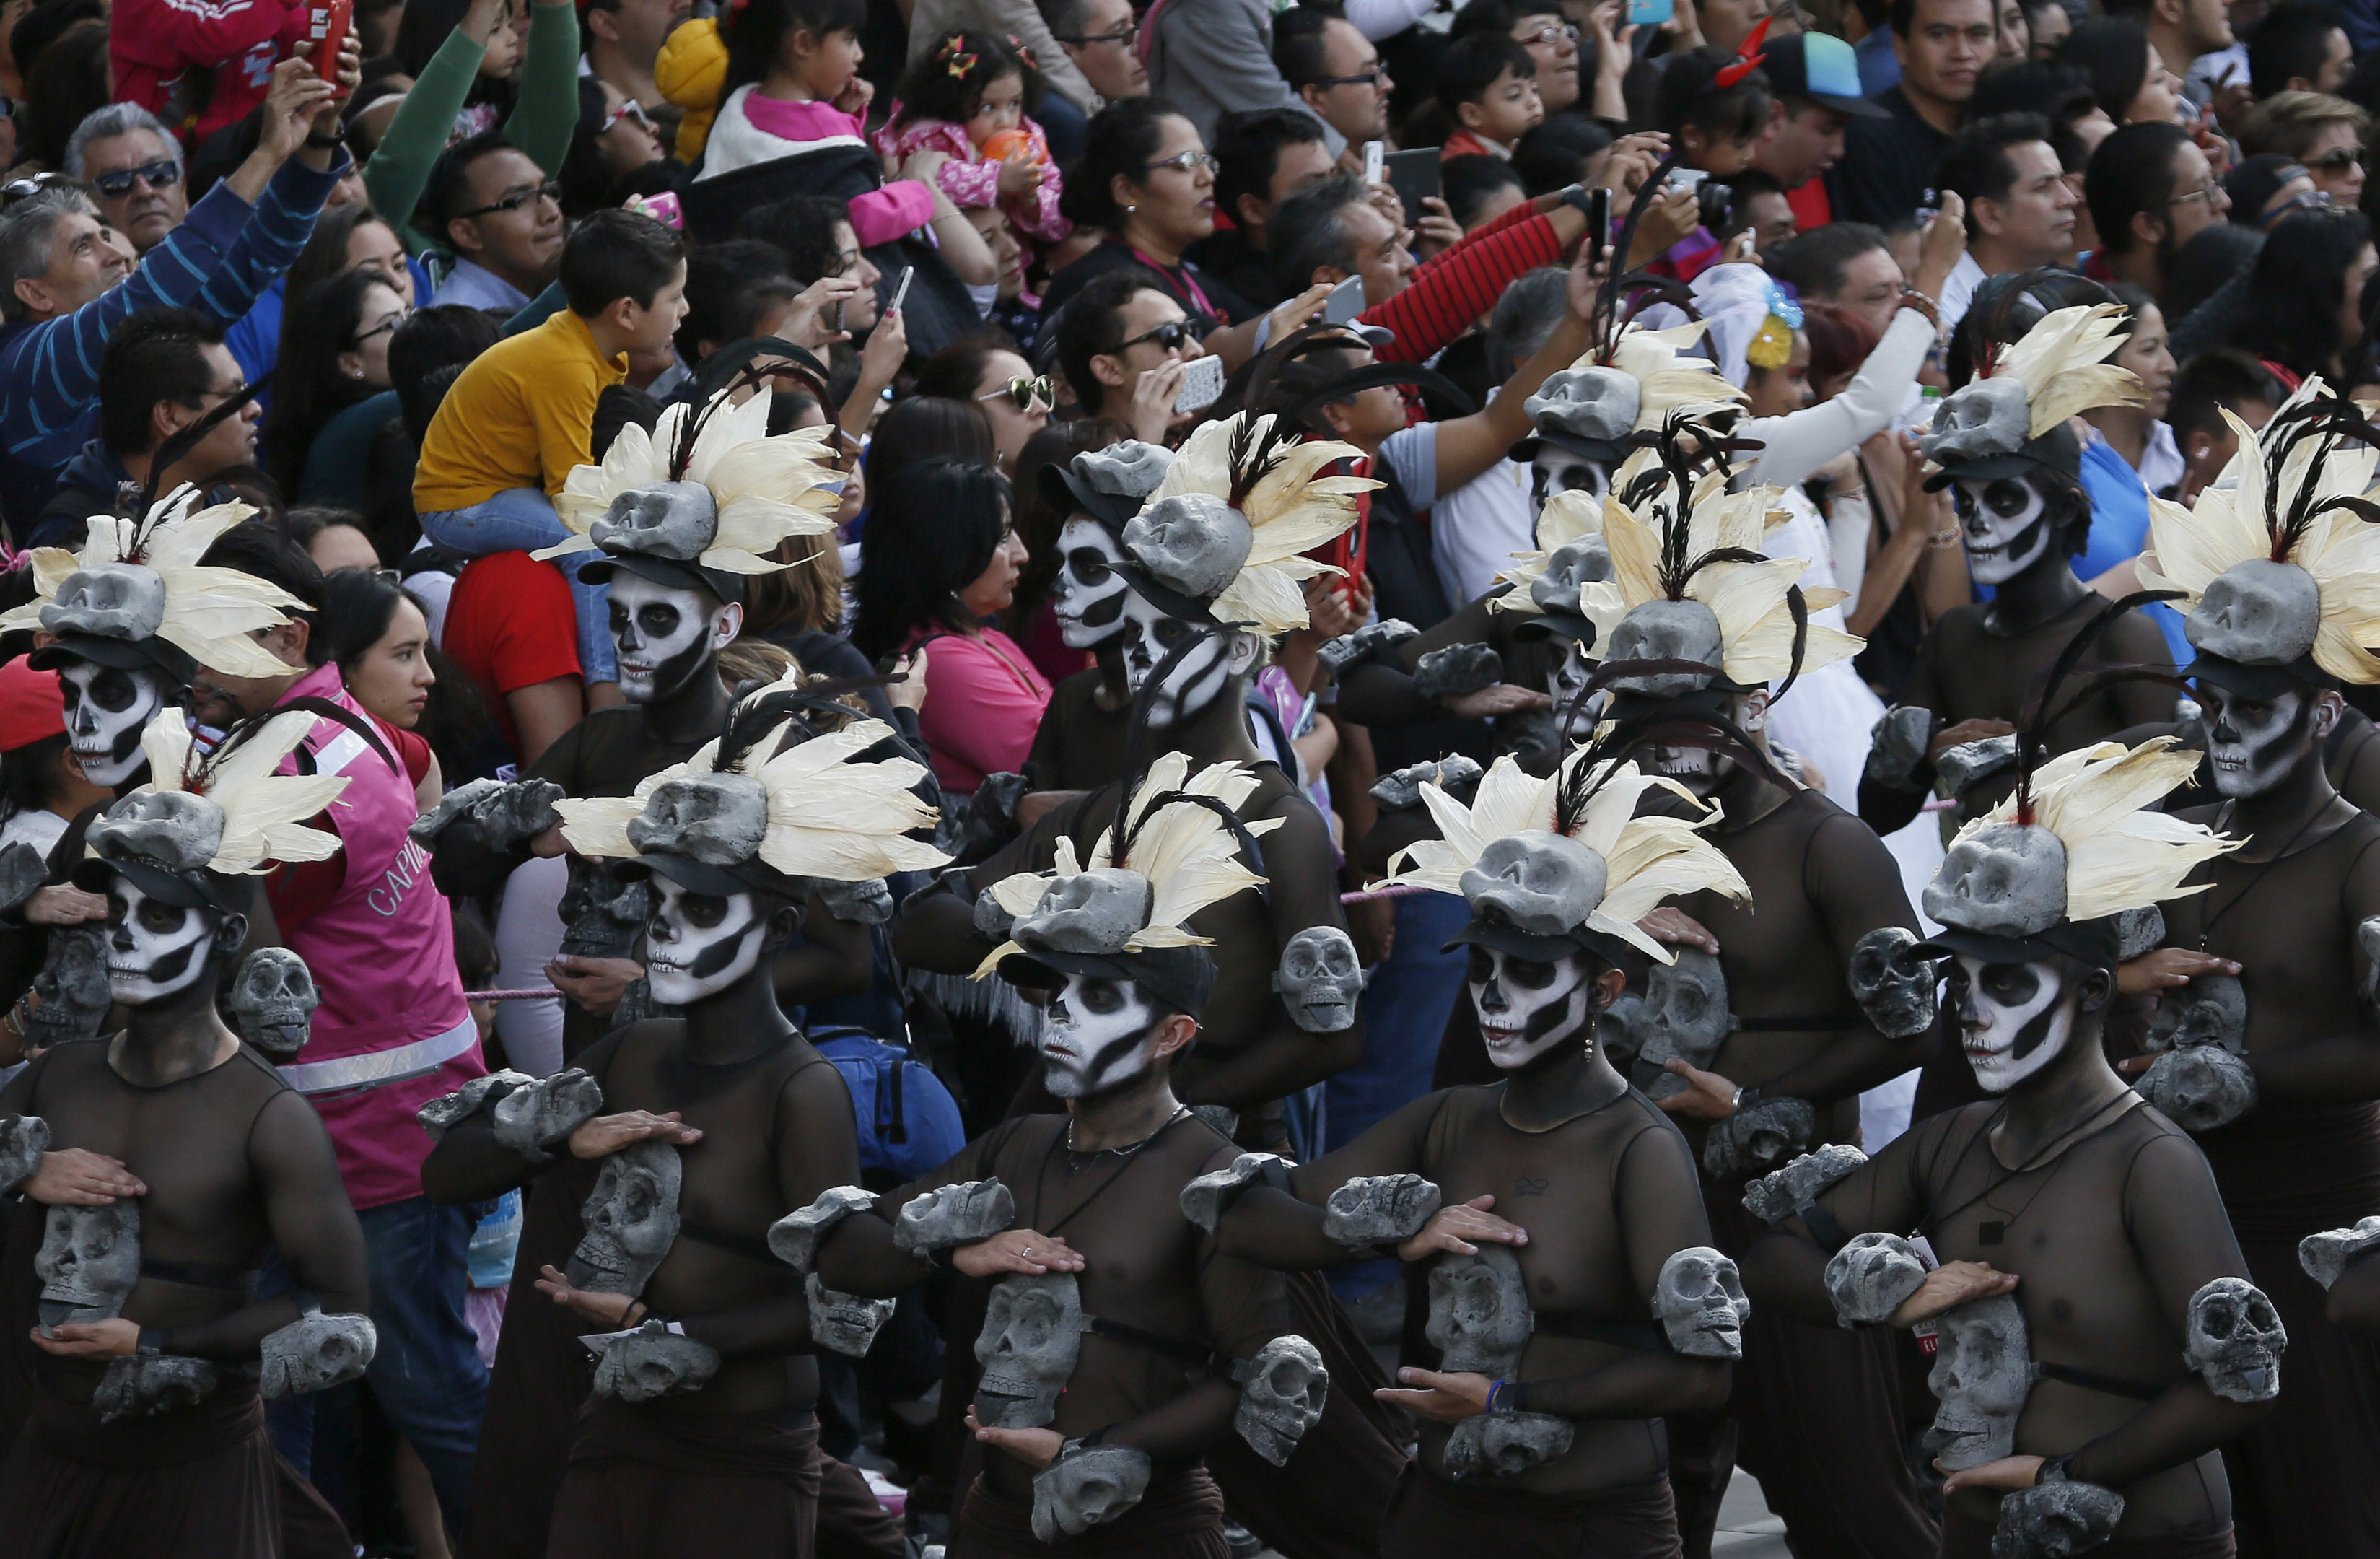 People watch the city's first Day of the Dead parade on Reforma Avenue in Mexico City,